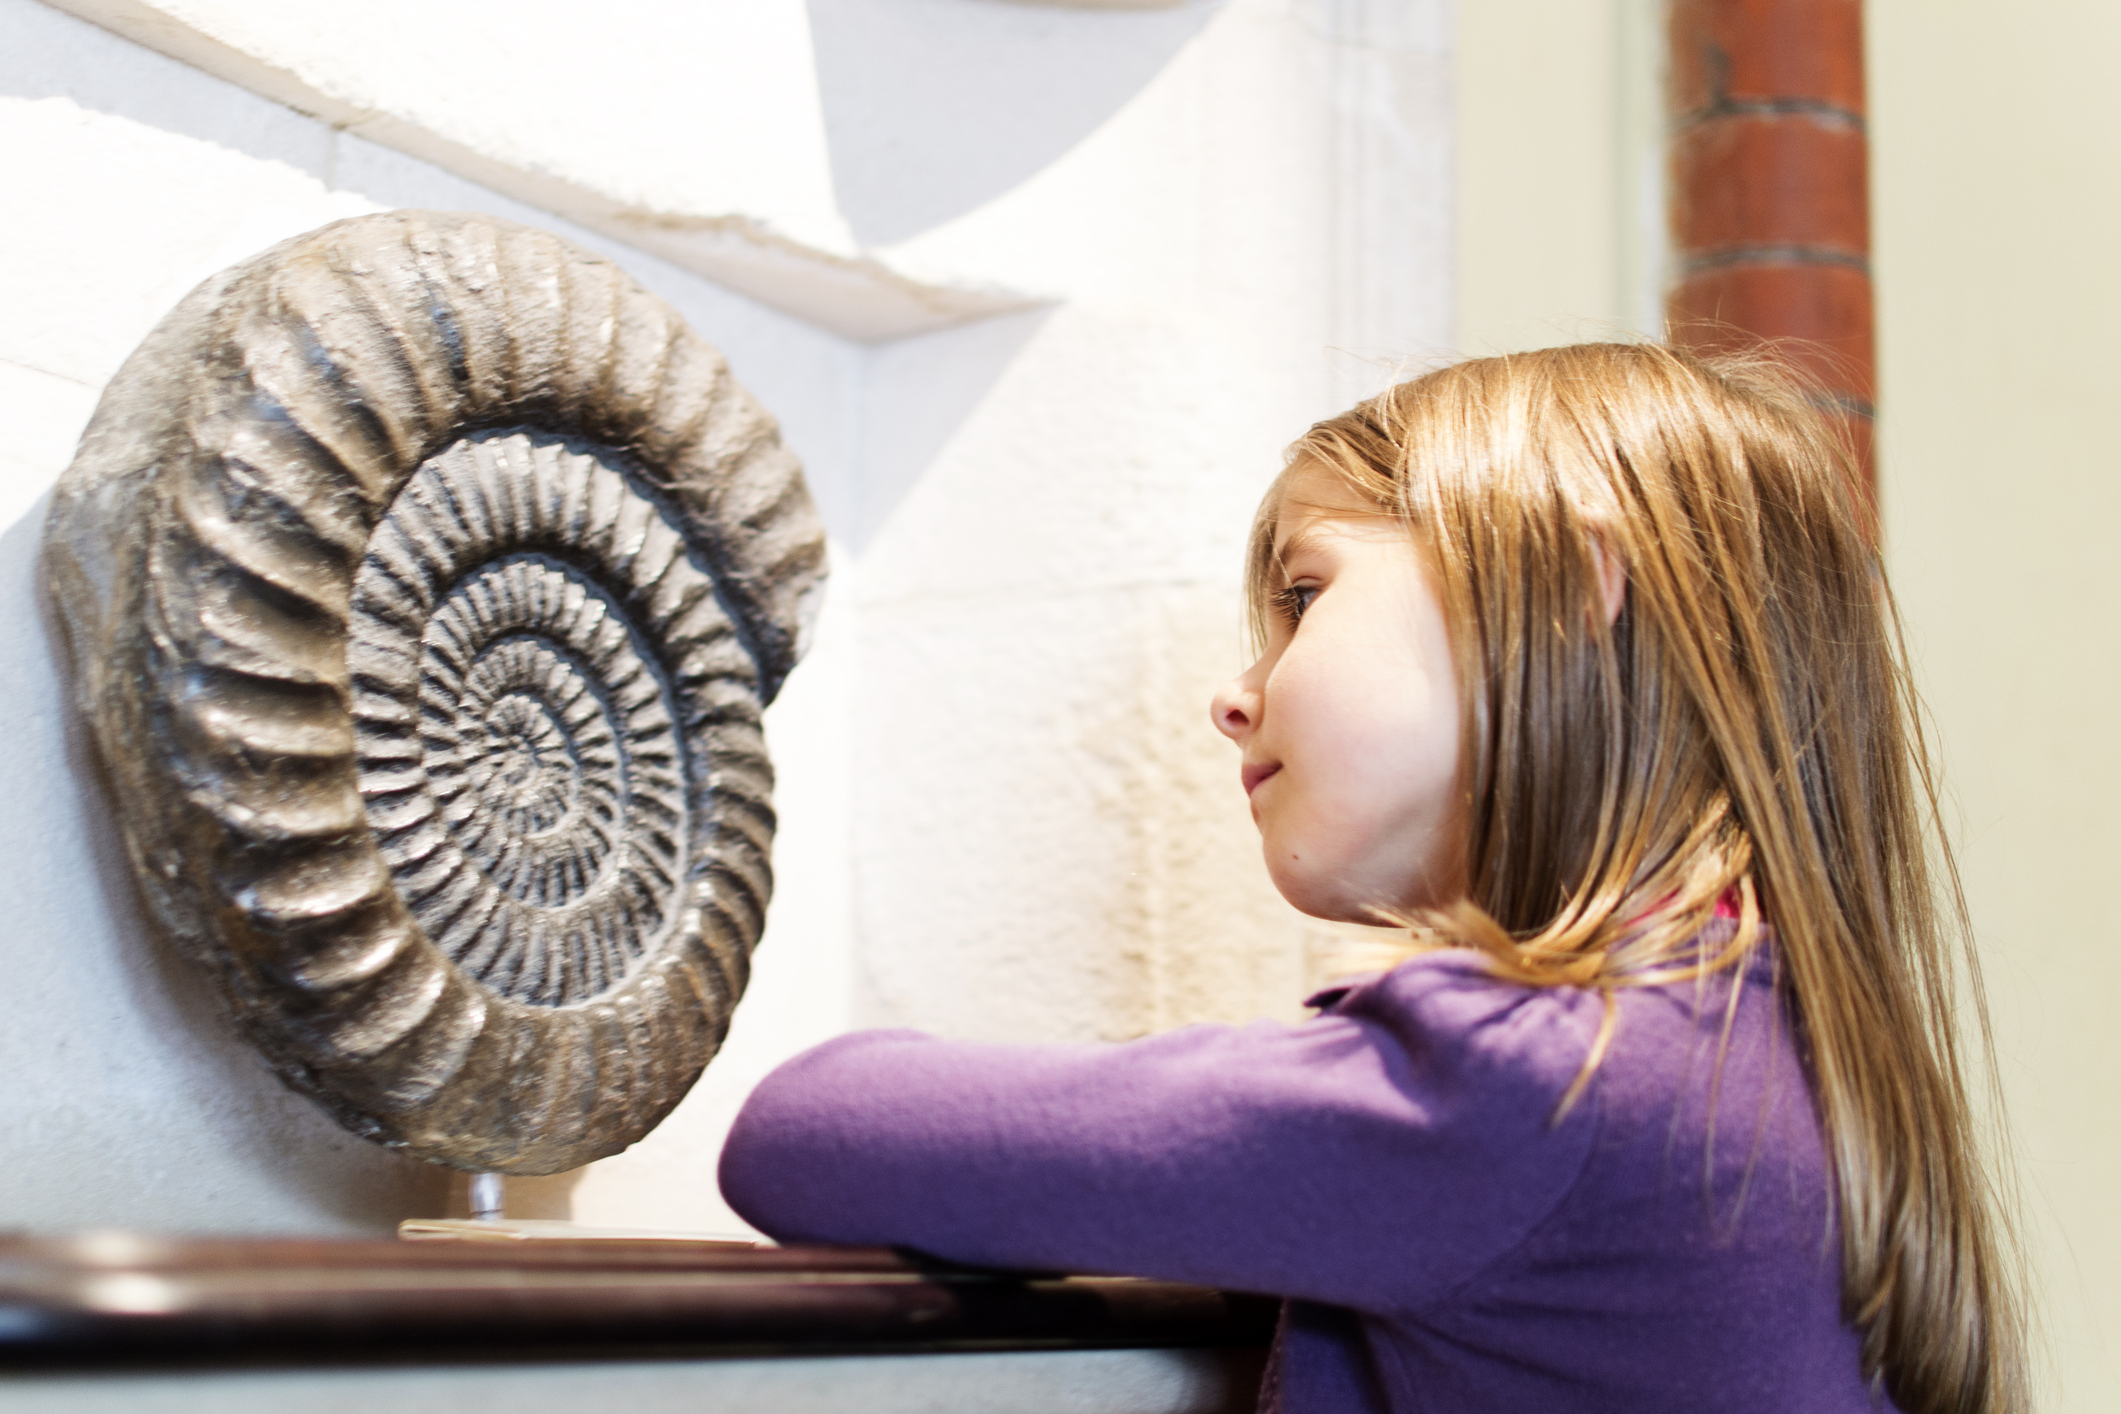 A young girl looks at an ammonite on display in a museum [url=search/lightbox/13598504#9fa3735]Students and studying lightbox[/url]